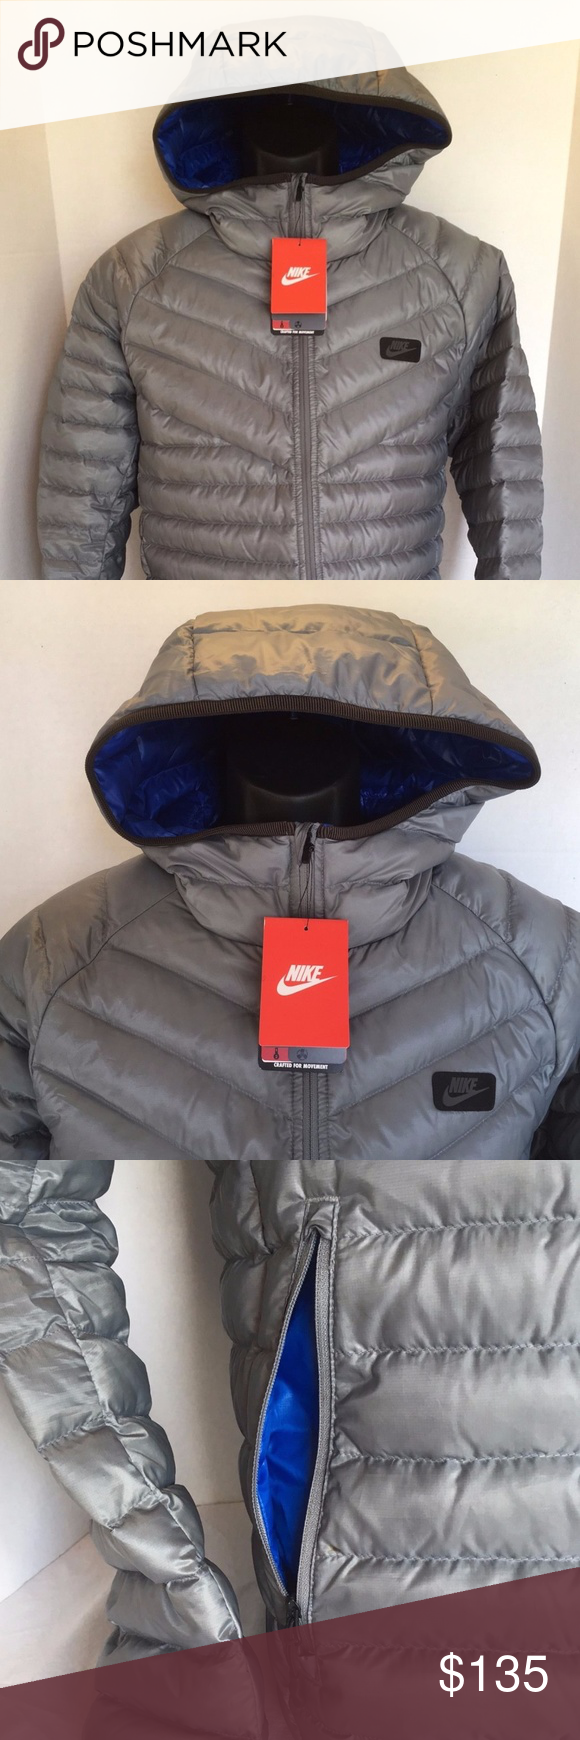 7c6561243af7 NEW NIKE HOODED GUILD 550 DOWN 693533 065 JACKET Nike Sportswear 550 Fill Down  Hooded Jacket